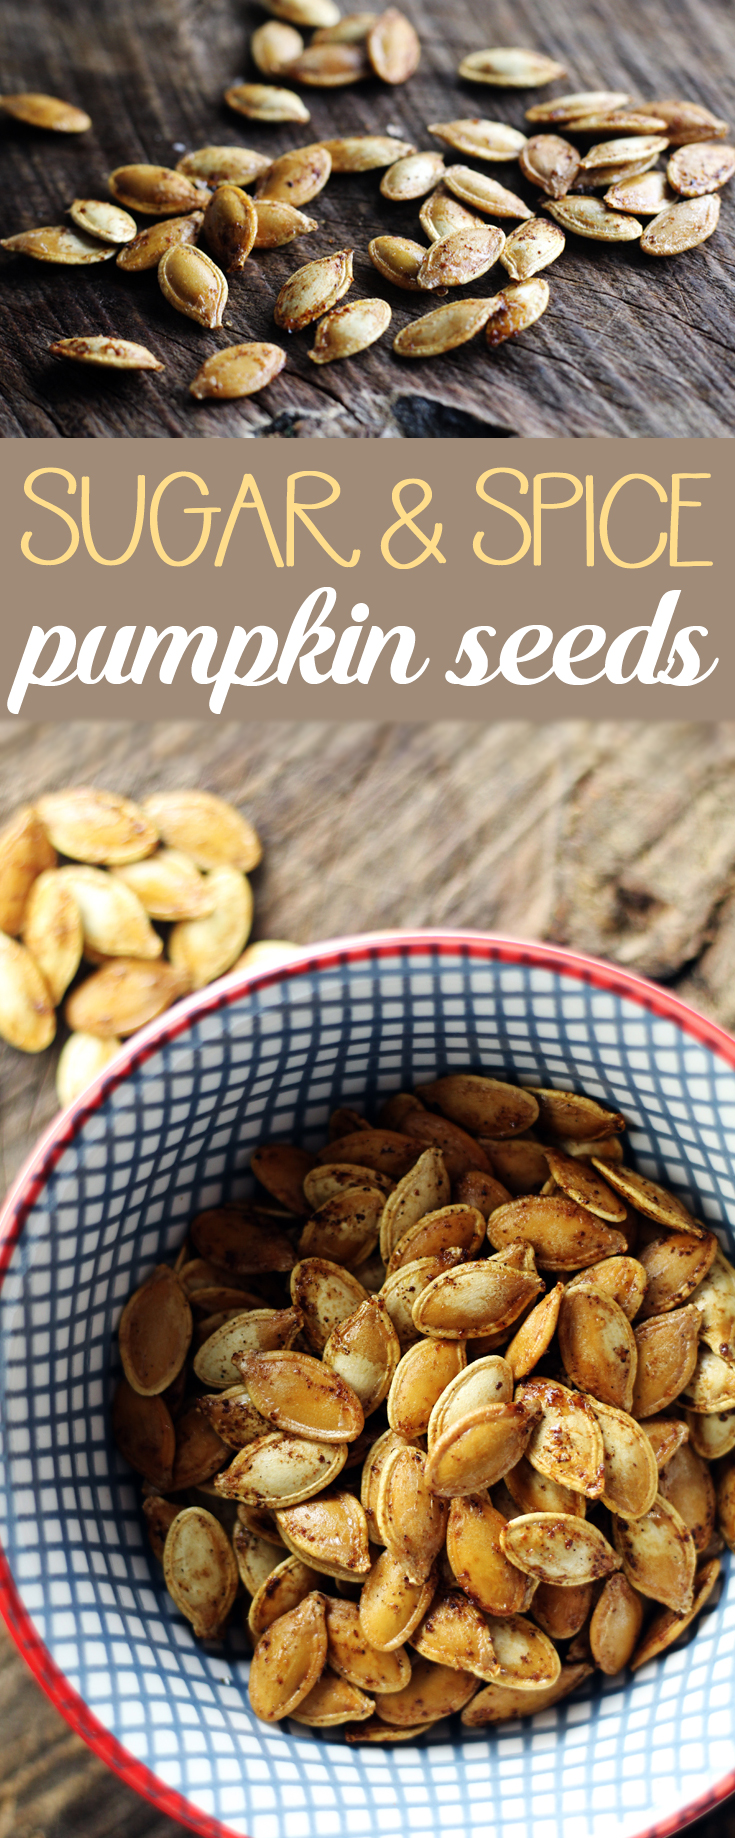 You're gonna fall in love with Sugar + Spice Roasted Pumpkin Seeds   A little sweet + a little spice. Perfect for the season . roastedpumpkinseeds #pumpkinseeds